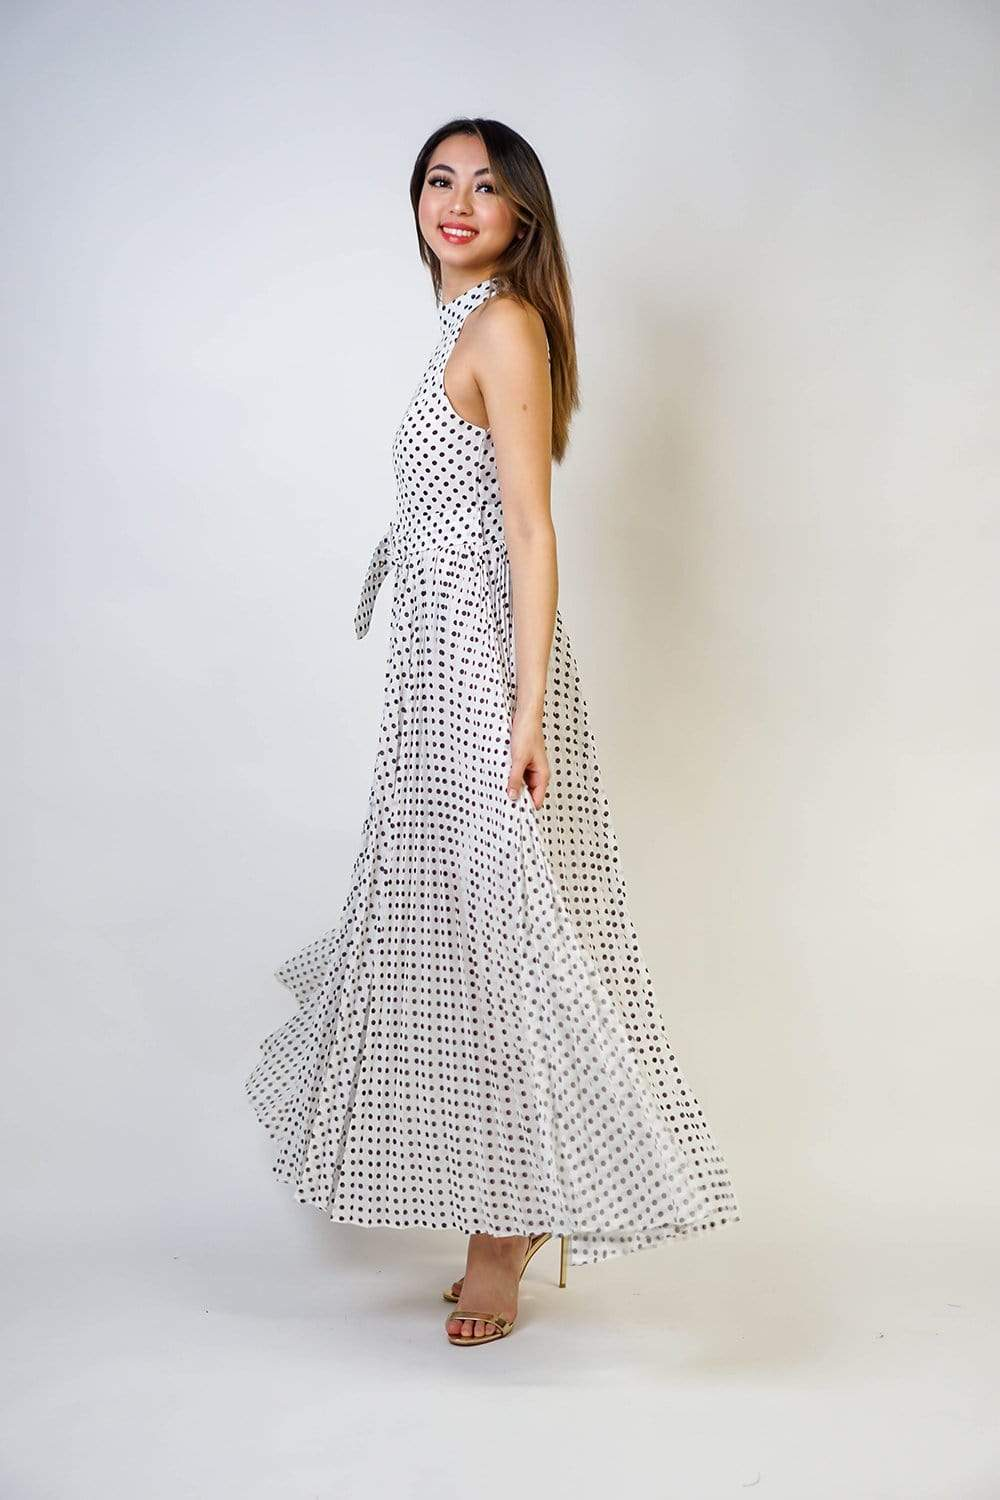 DRESS Polka Dot Halter Neck Maxi Dress - Chloe Dao